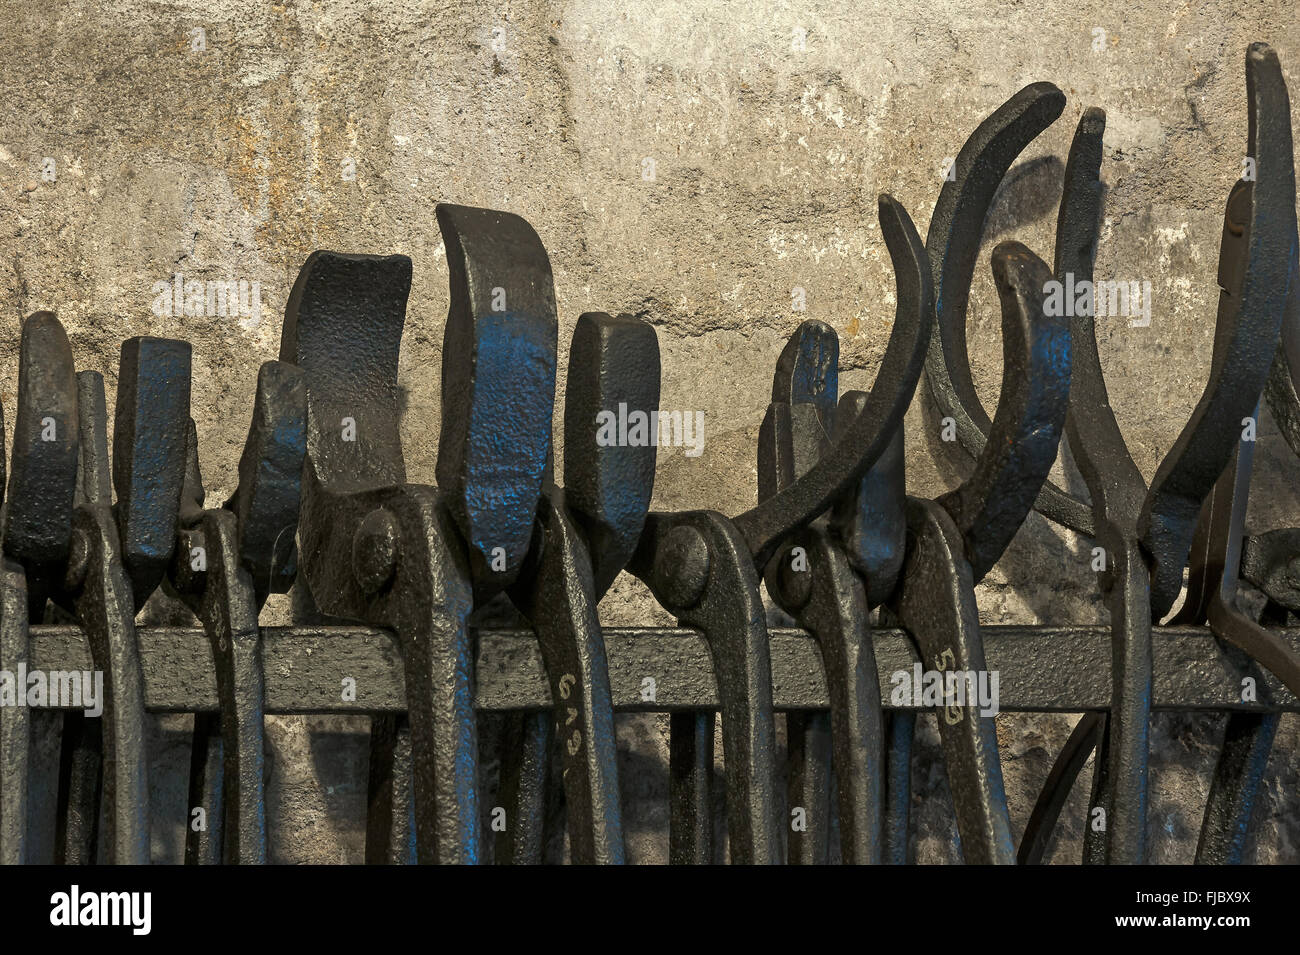 Forge tongs in a forge of the 19th century, Industrial Museum, Lauf, Middle Franconia, Bavaria, Germany - Stock Image